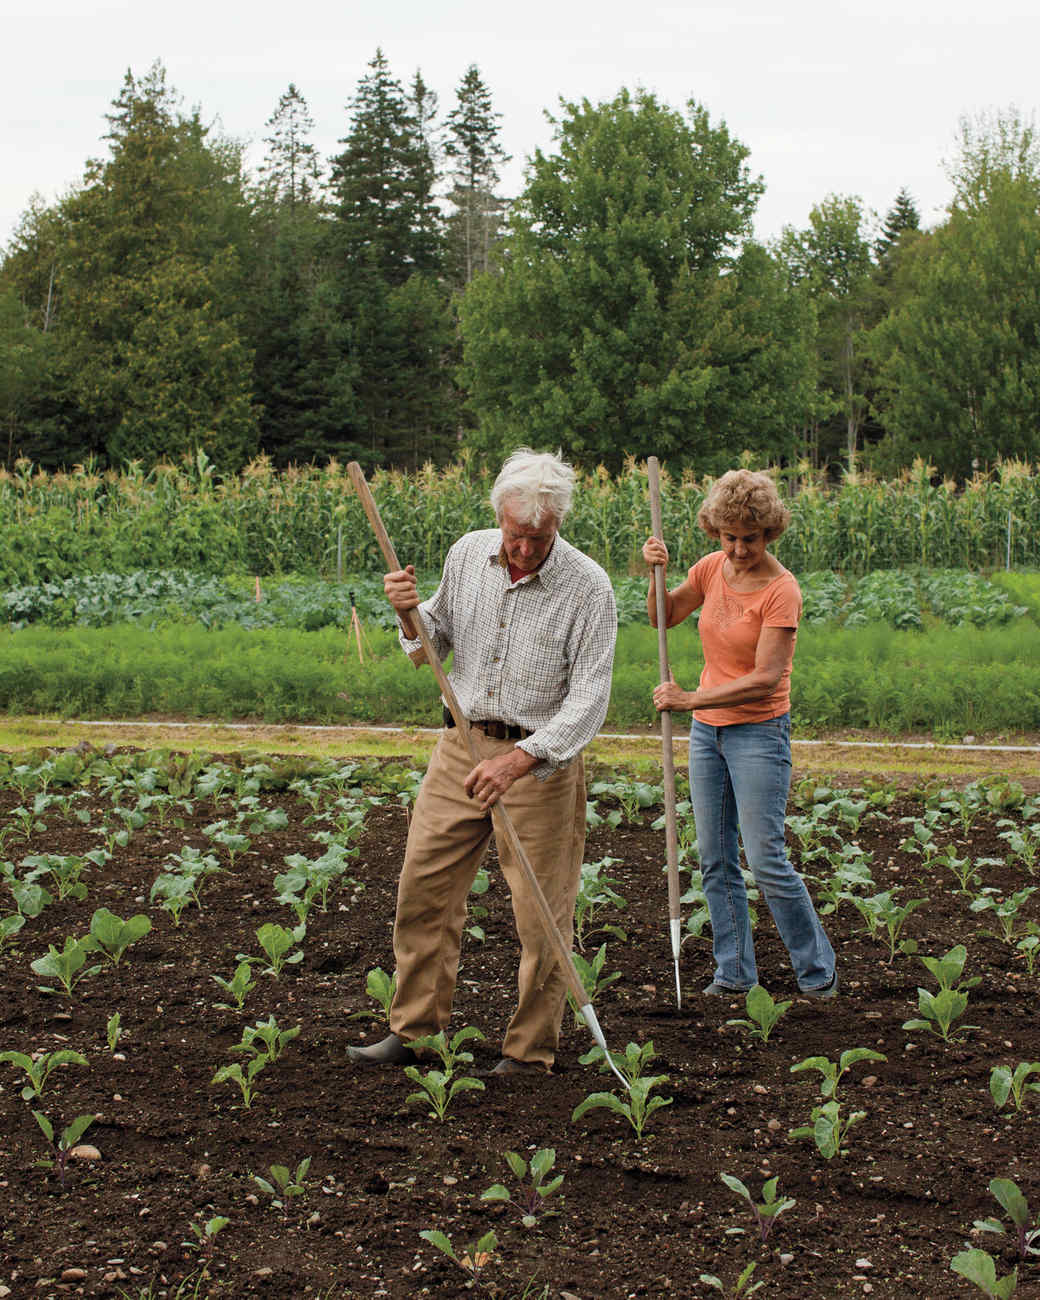 four-seasons-farm-gardening-md107849.jpg